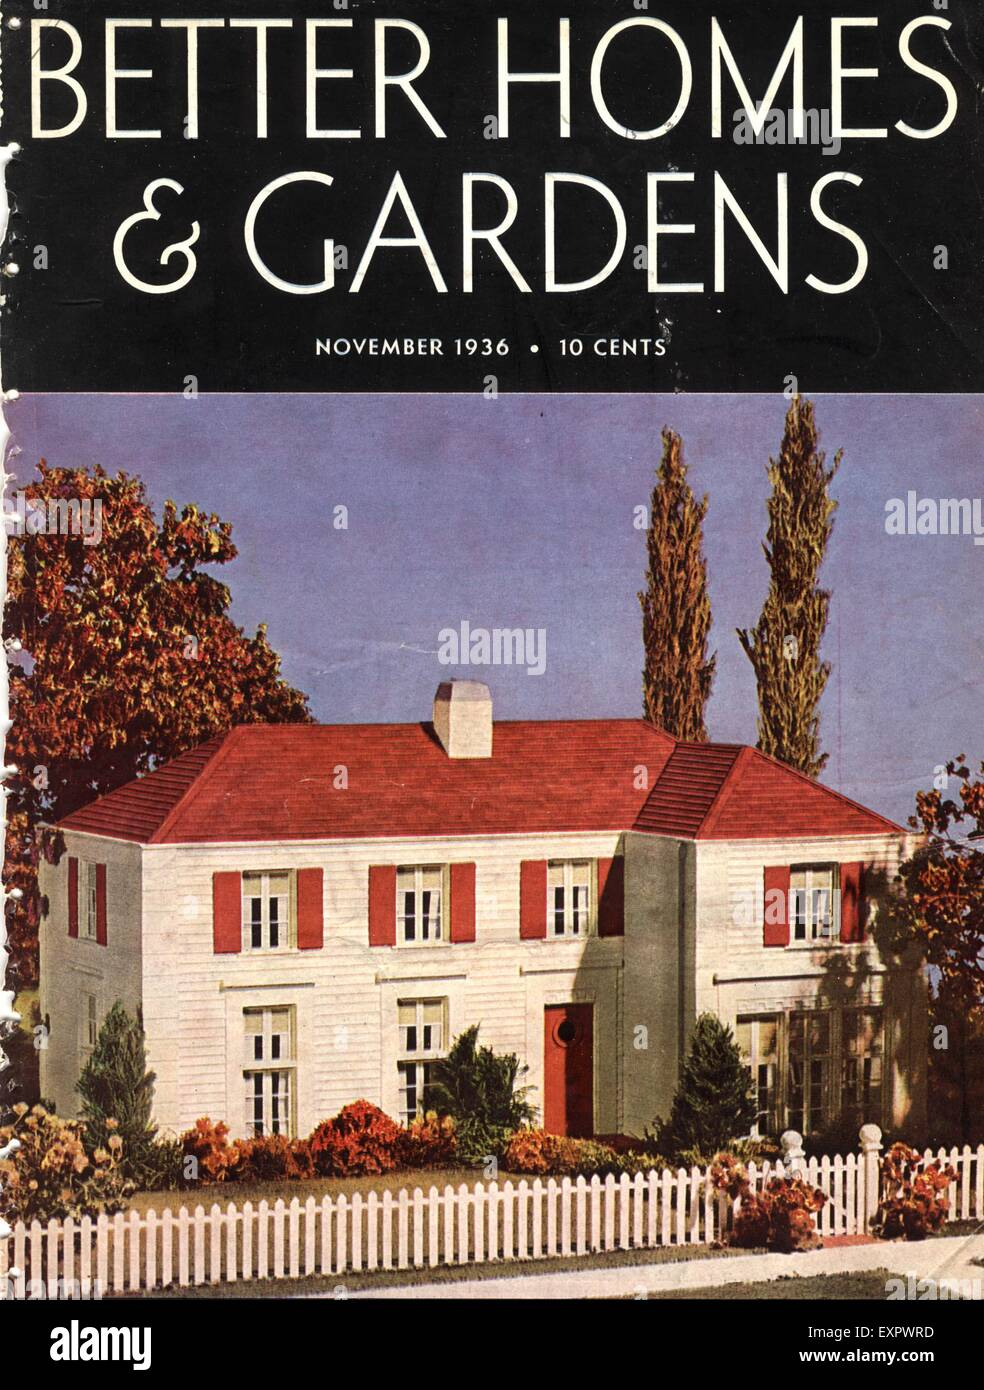 Home Magazines Usa 1930s usa better homes and gardens magazine cover stock photo